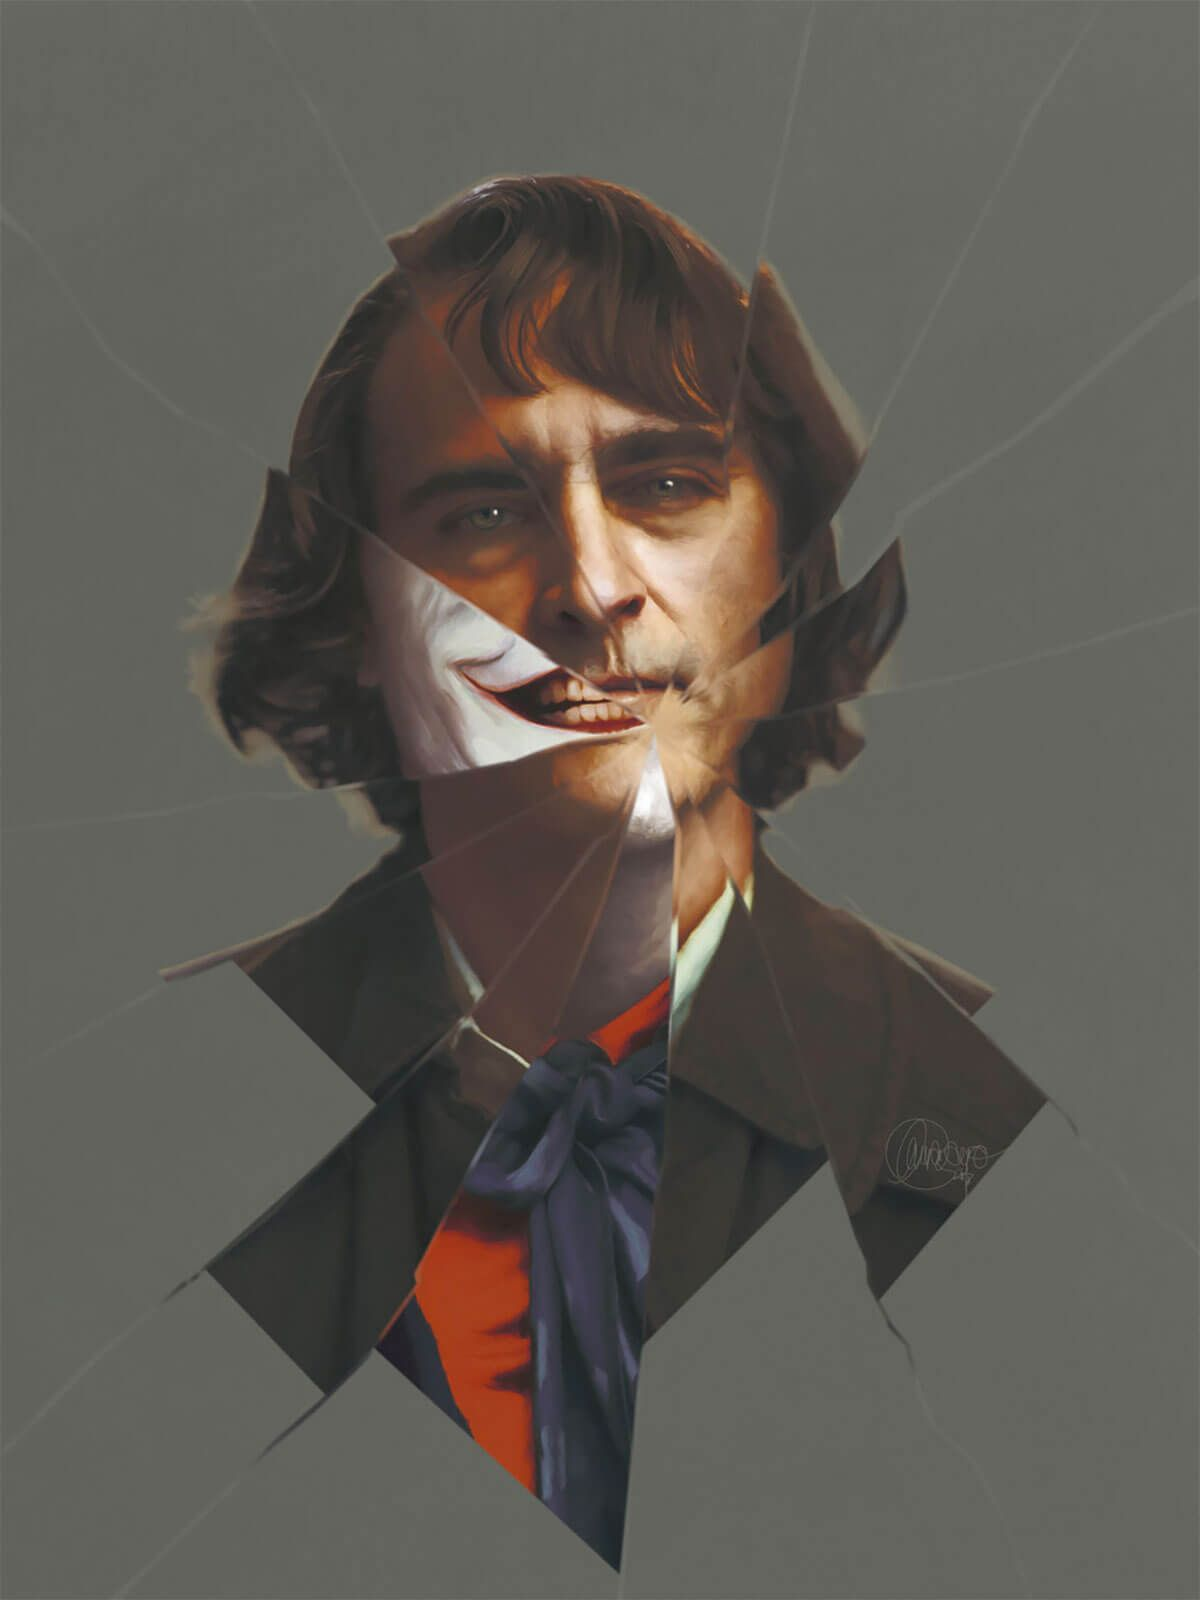 Joker Art Collection to Put a Smile on Your Face